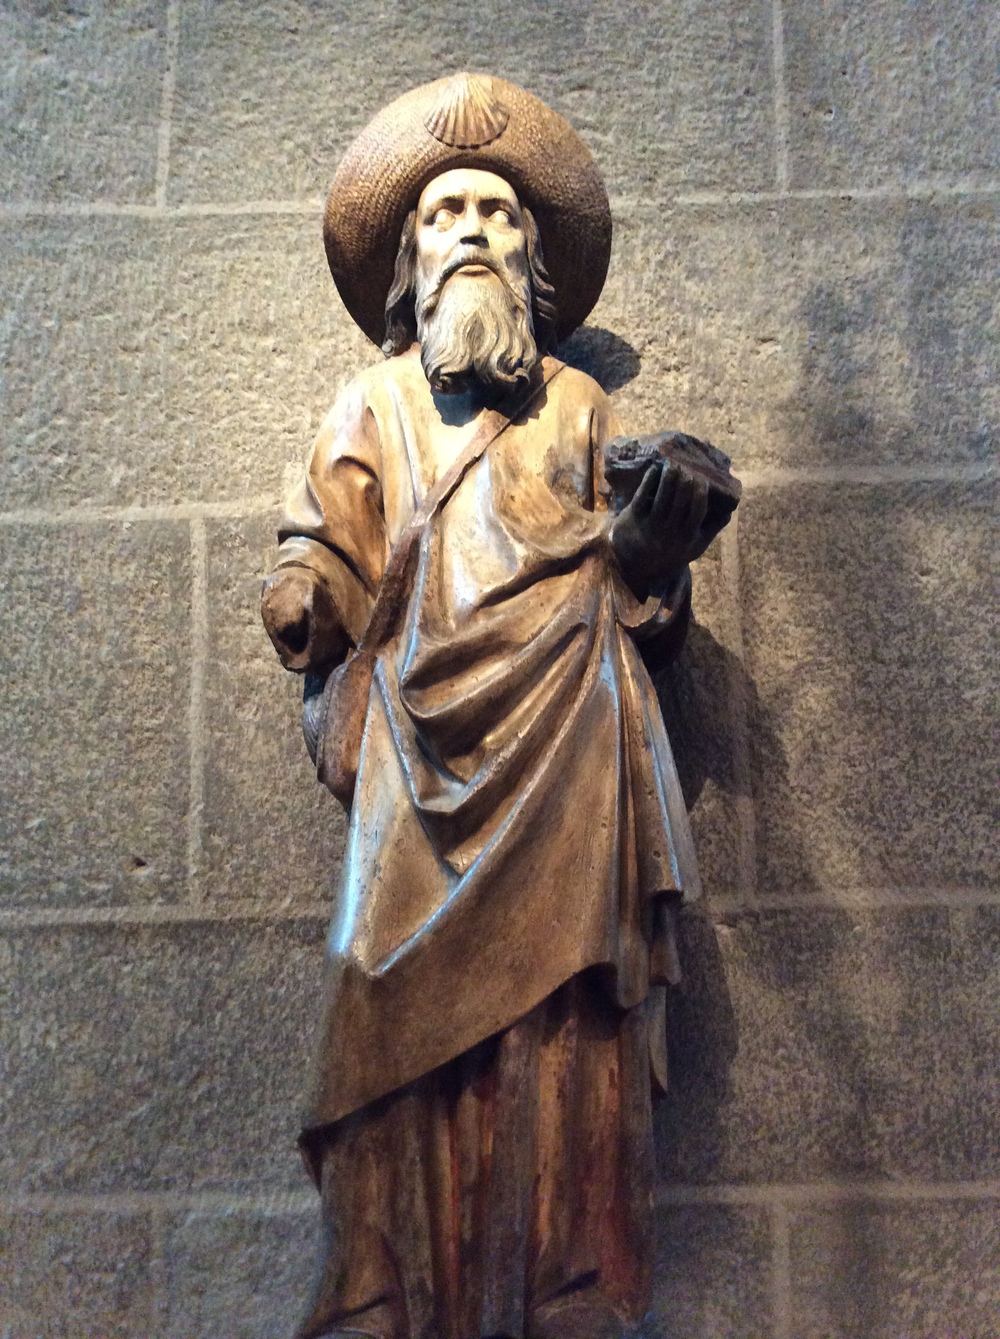 This pilgrim statue resides in the cathedral where it all began in 950